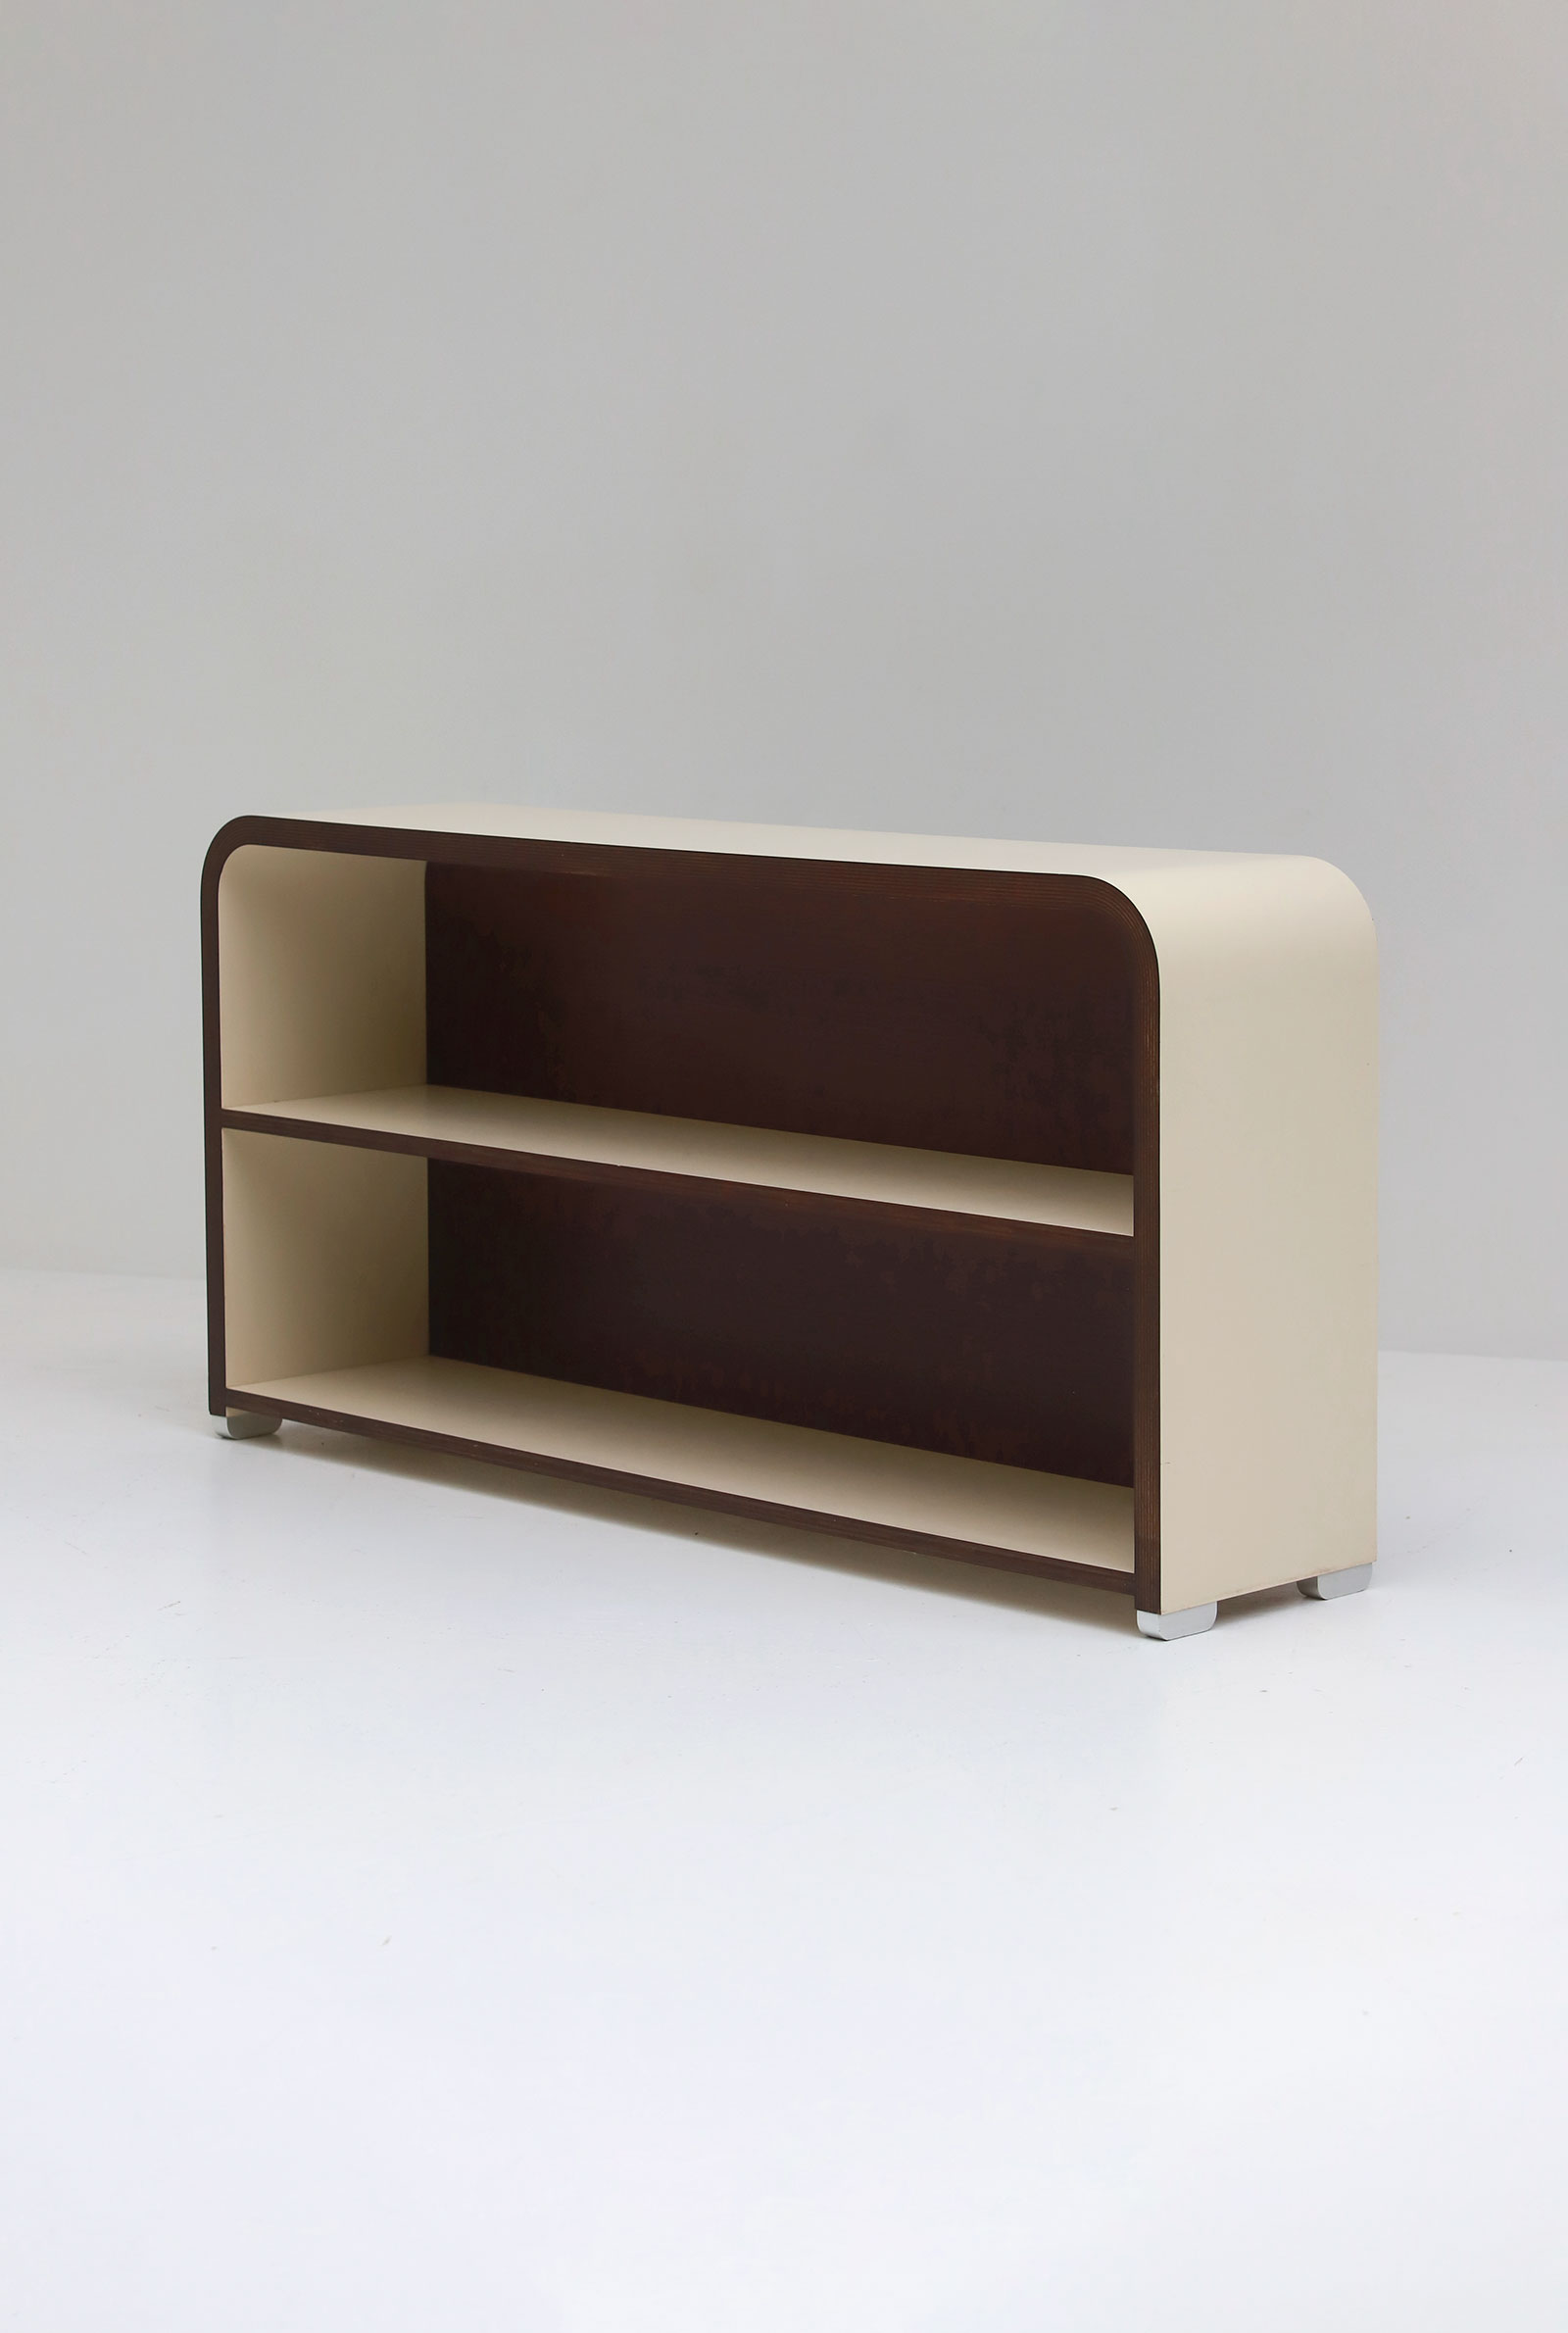 Jules Wabbes bookcase 1965image 2